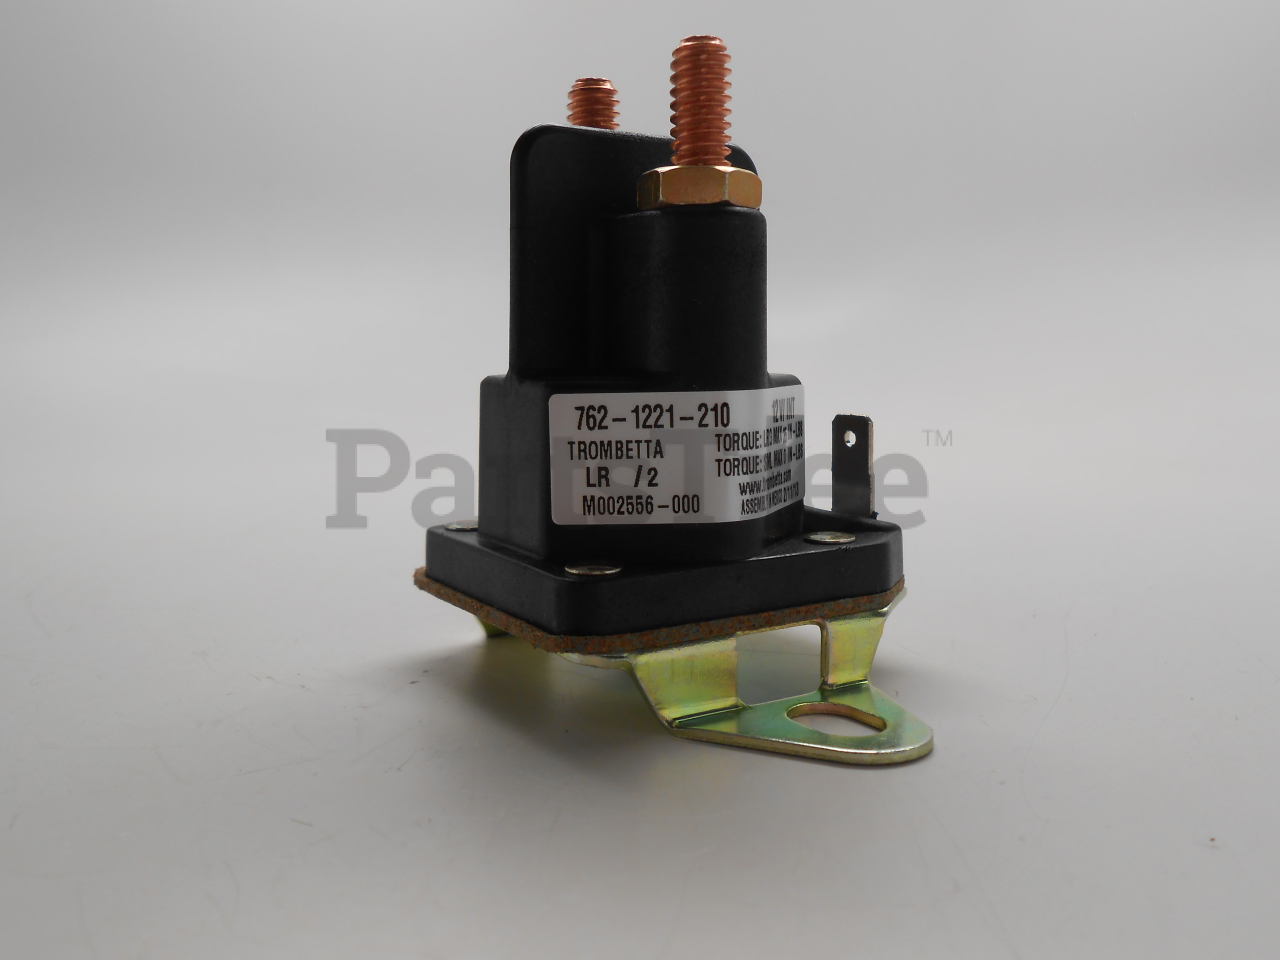 Snapper Part 1755382YP, SOLENOID | PartsTree.com